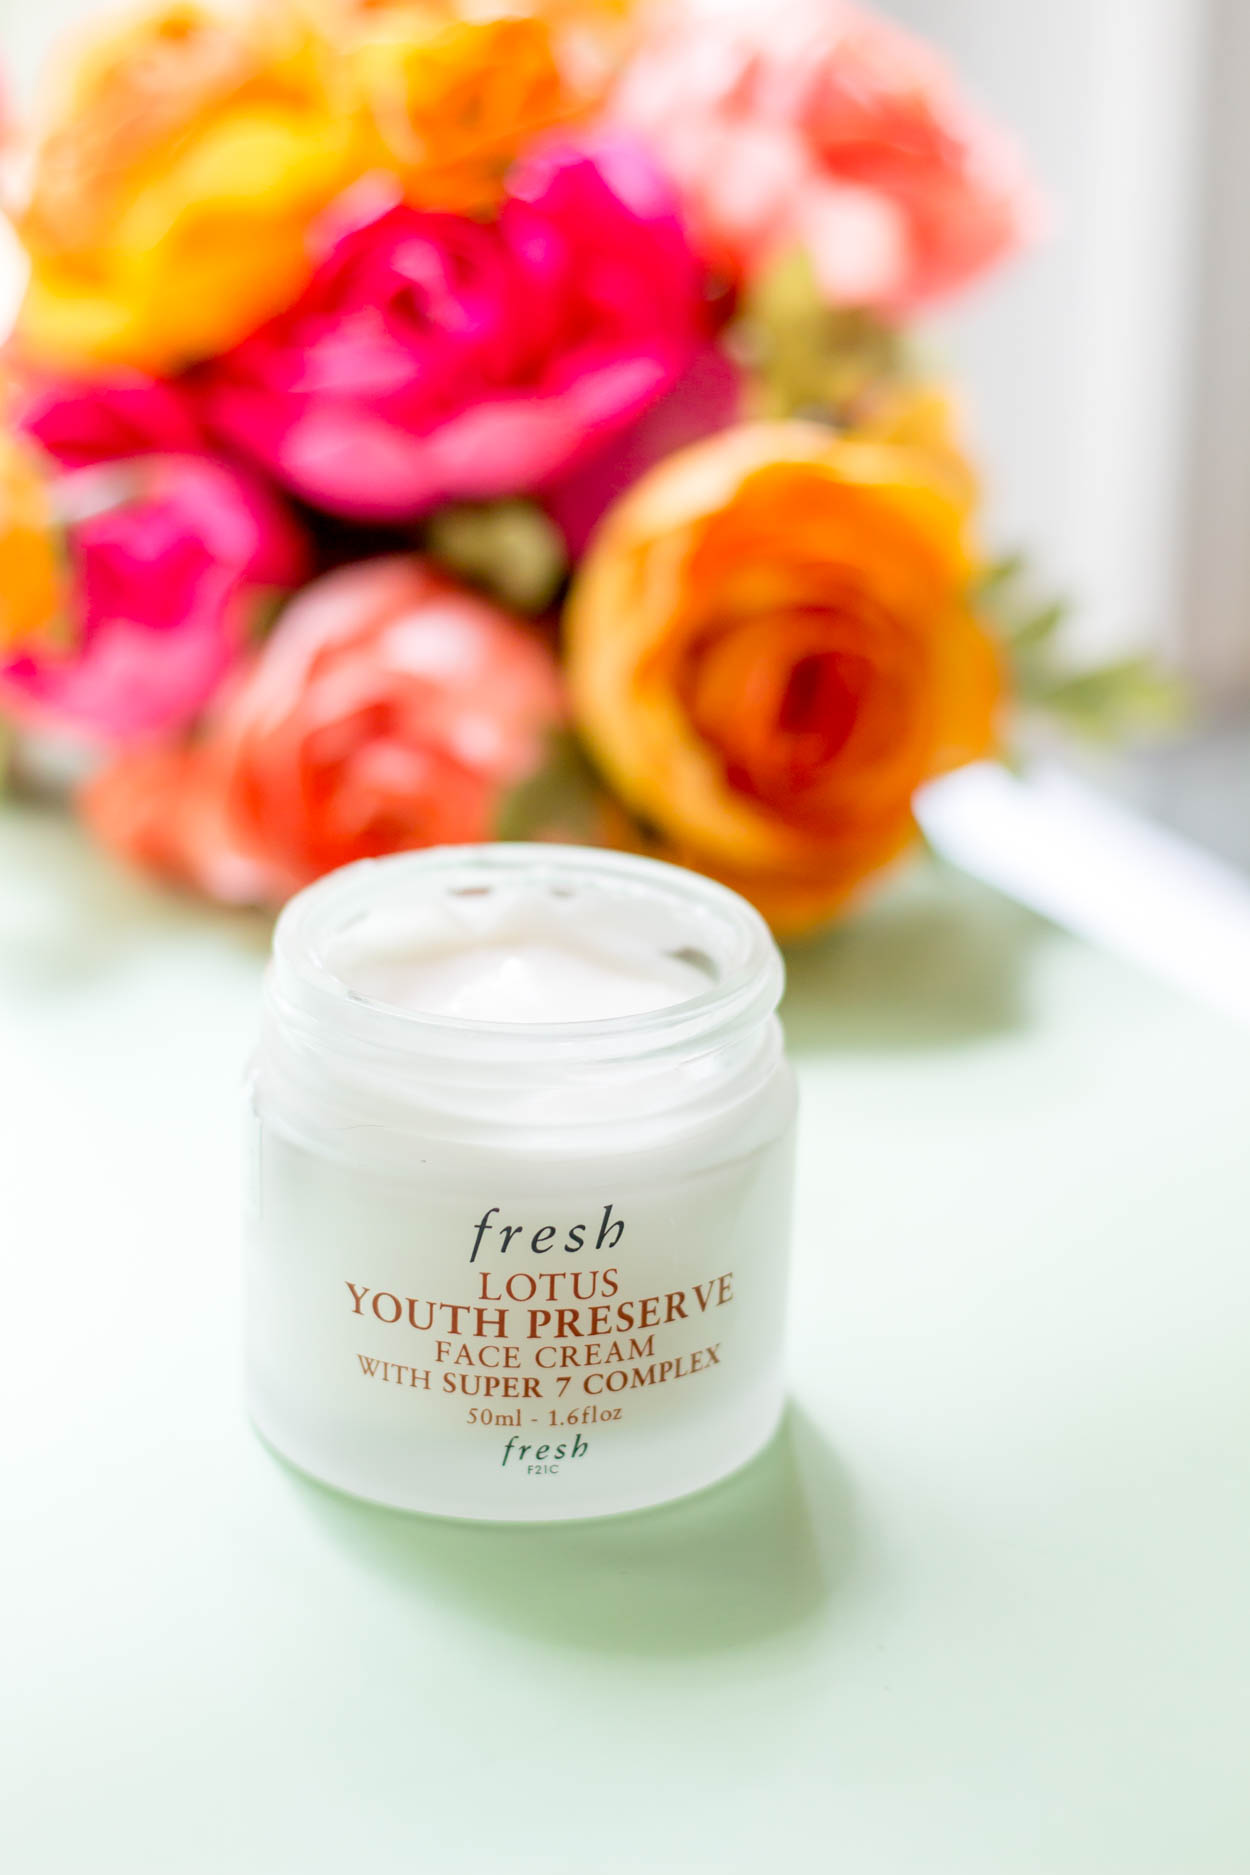 Fresh Skincare has to be one of my favorite skincare brands. Natural ingredients, but with modern technology! Their Rose Face Mask is outta this world good! #beauty #skincare